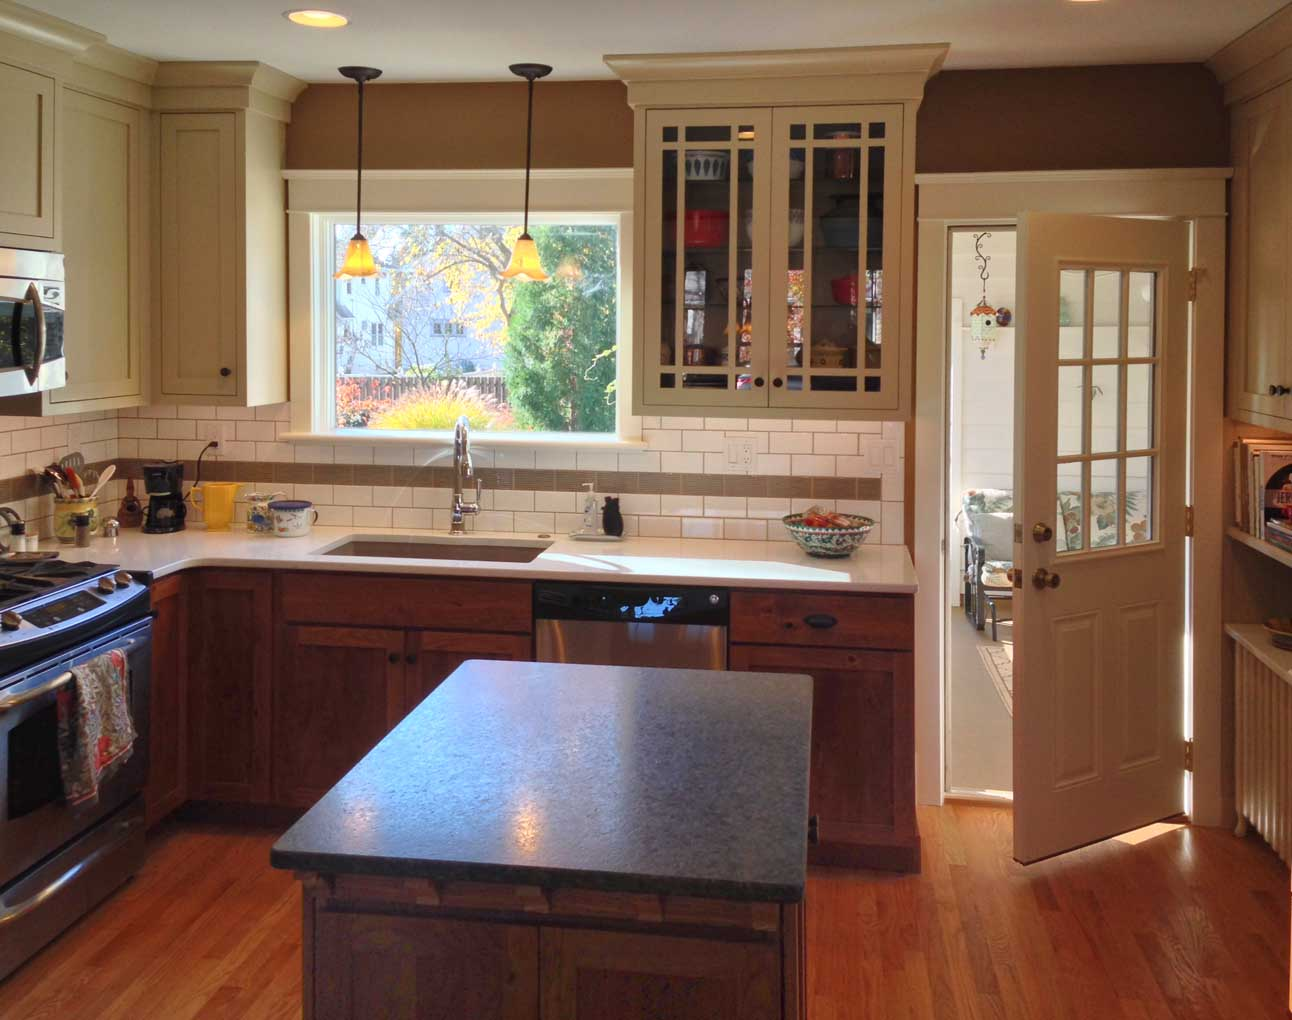 camp hill s colonial colonial kitchen design Share